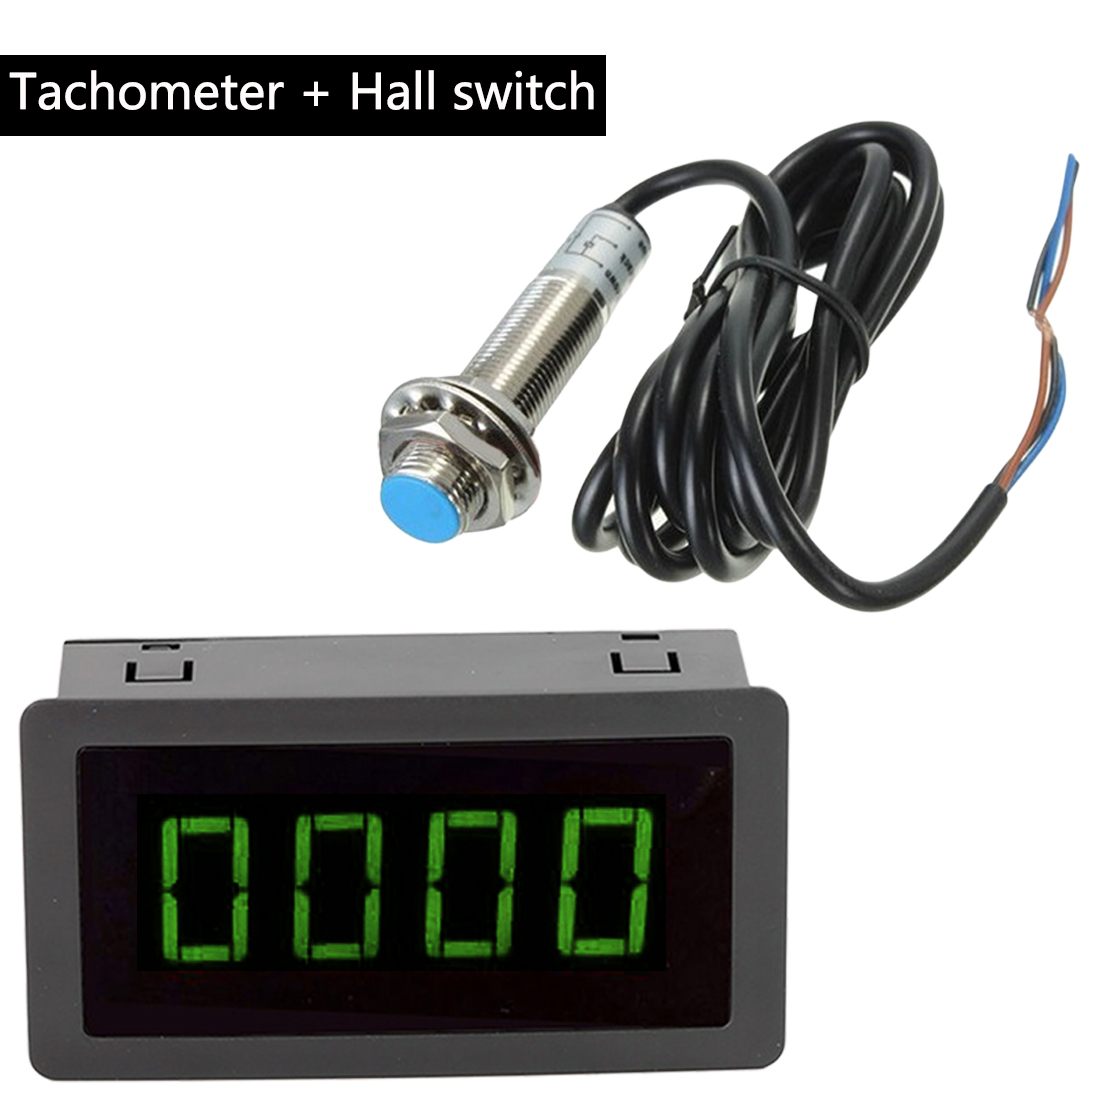 4 Digital Blue/Green/Red LED Tachometer RPM Speed Meter And DC 8-15V 10-9999RPM Hall Proximity Switch Sensor NPN Gauges Tools